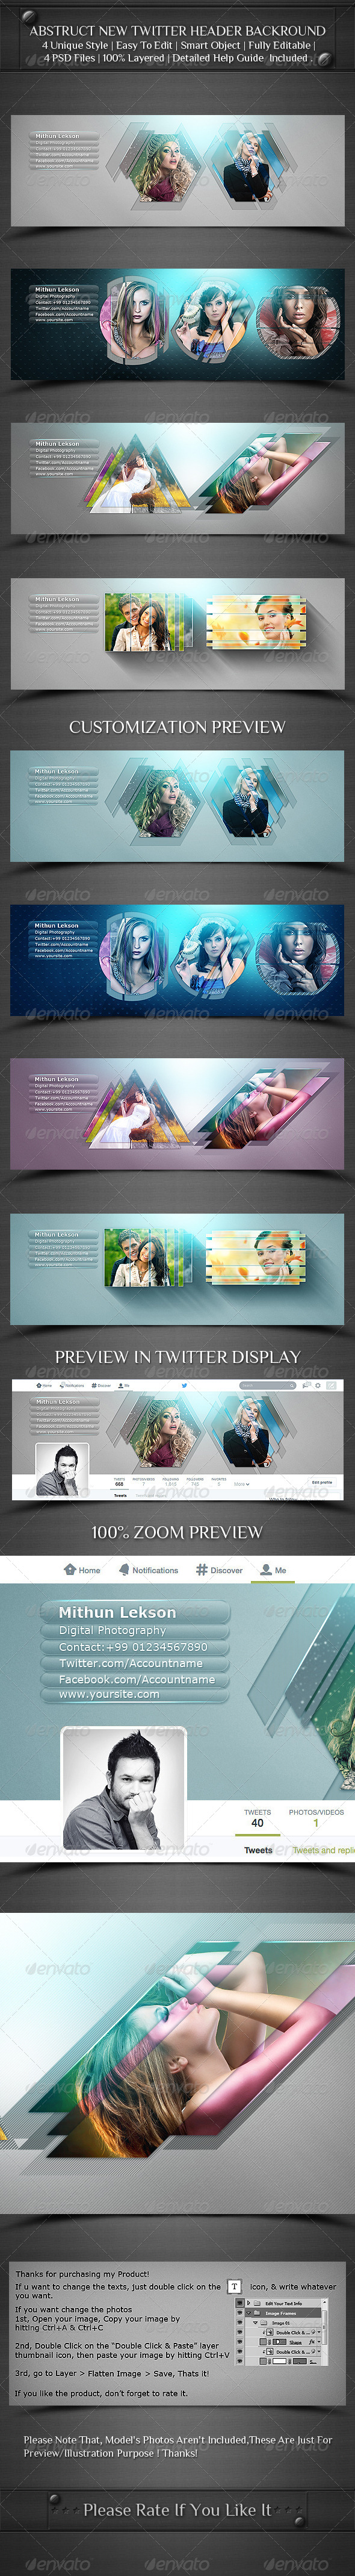 GraphicRiver Abstruct New Twitter Profile Header Backround 8050036